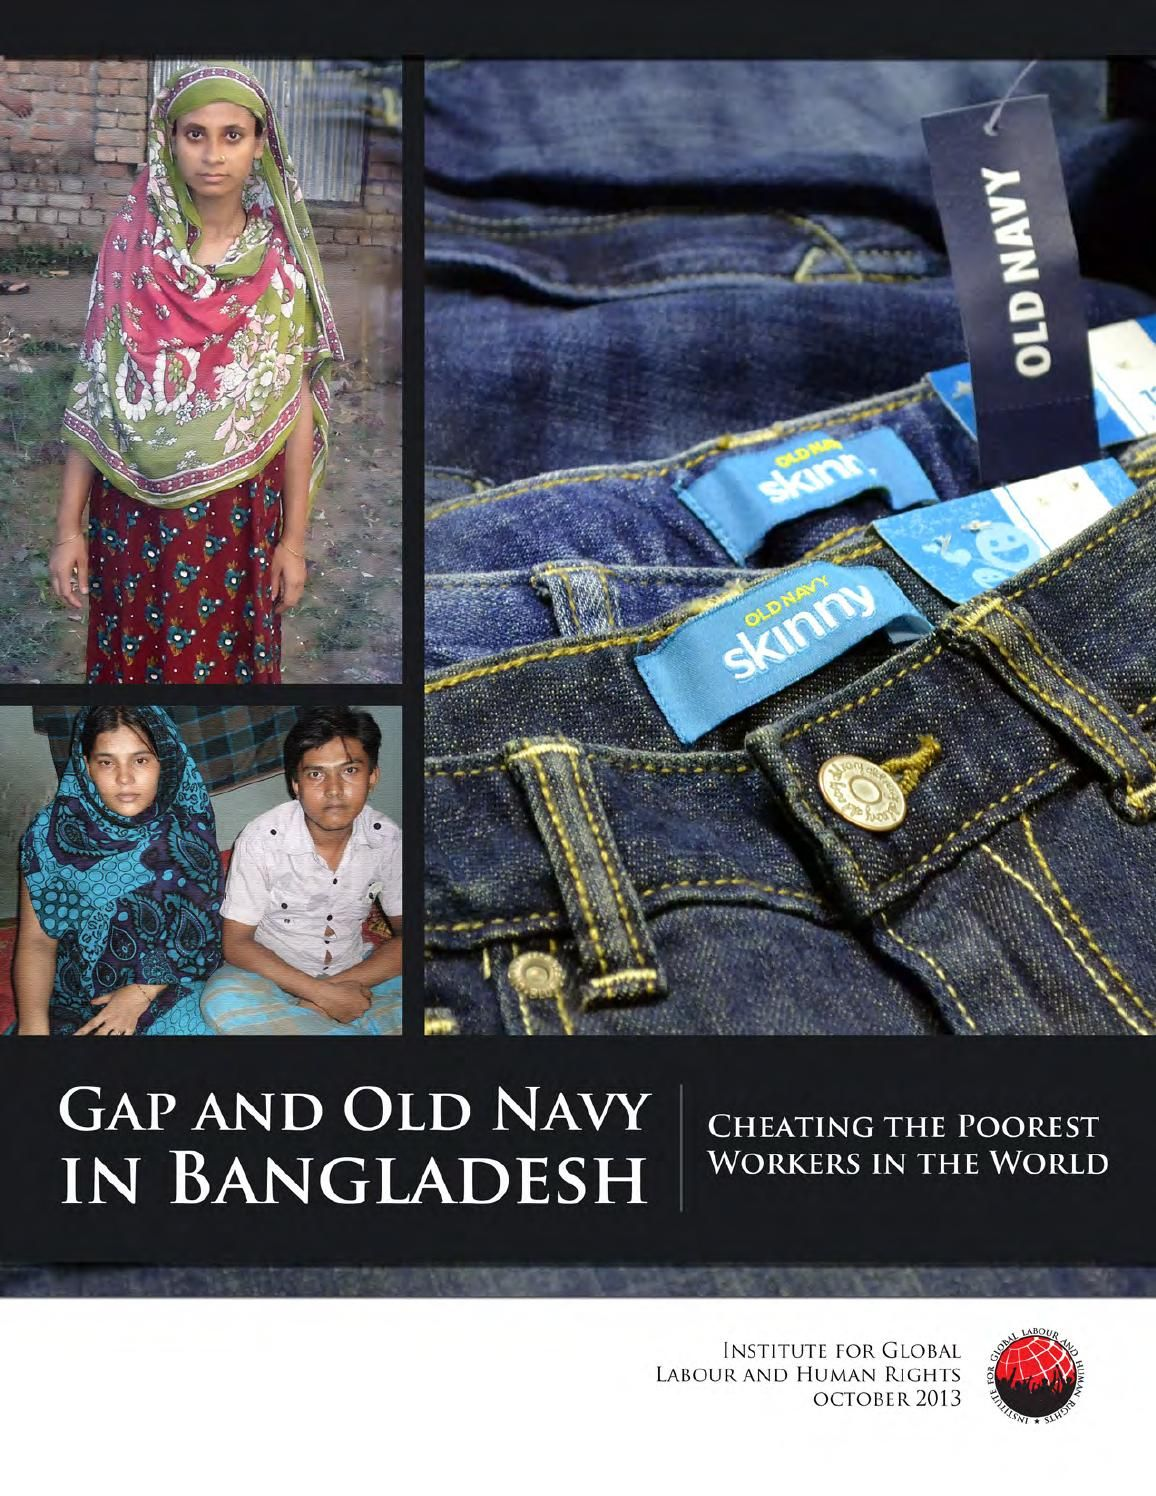 Making jeggings and jeans for Old Navy, Next Collections factory in Bangladesh cheated workers of their wages. Pregnant women are illegally terminated and denied their legal maternity leave. Workers were beaten or jailed for asking for their legal rights.